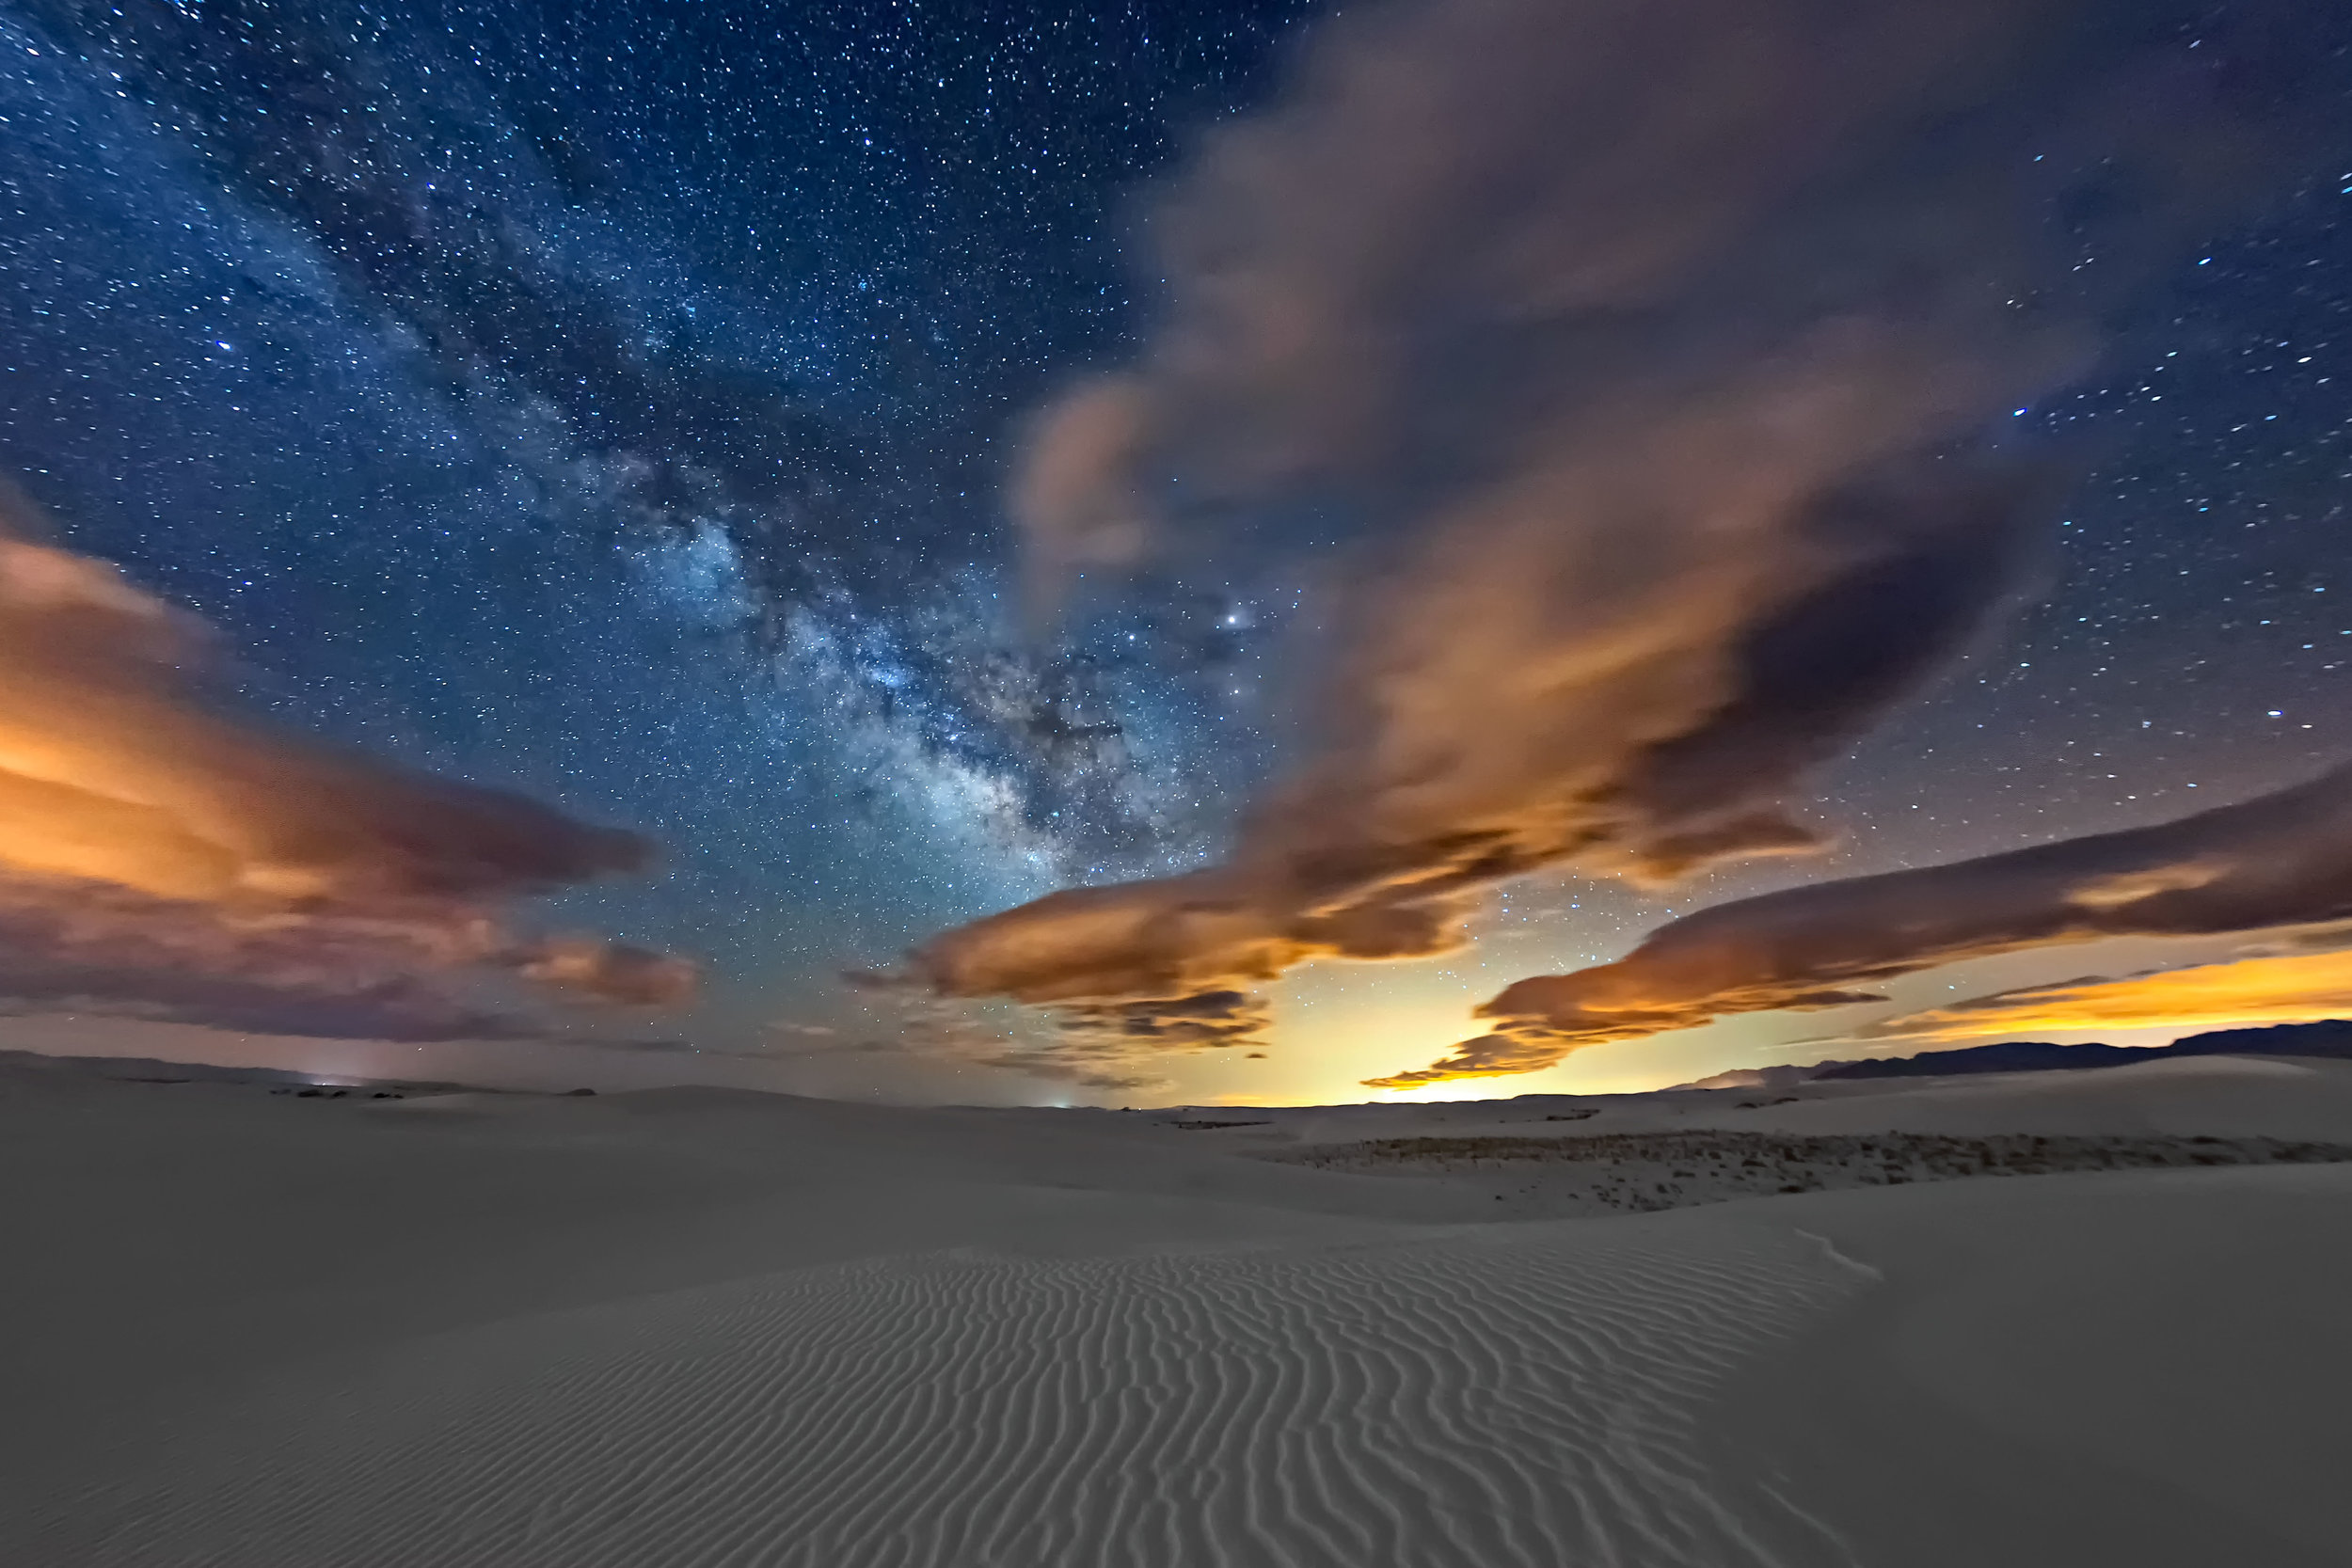 Las Cruces skyglow affecting White Sands, New Mexico